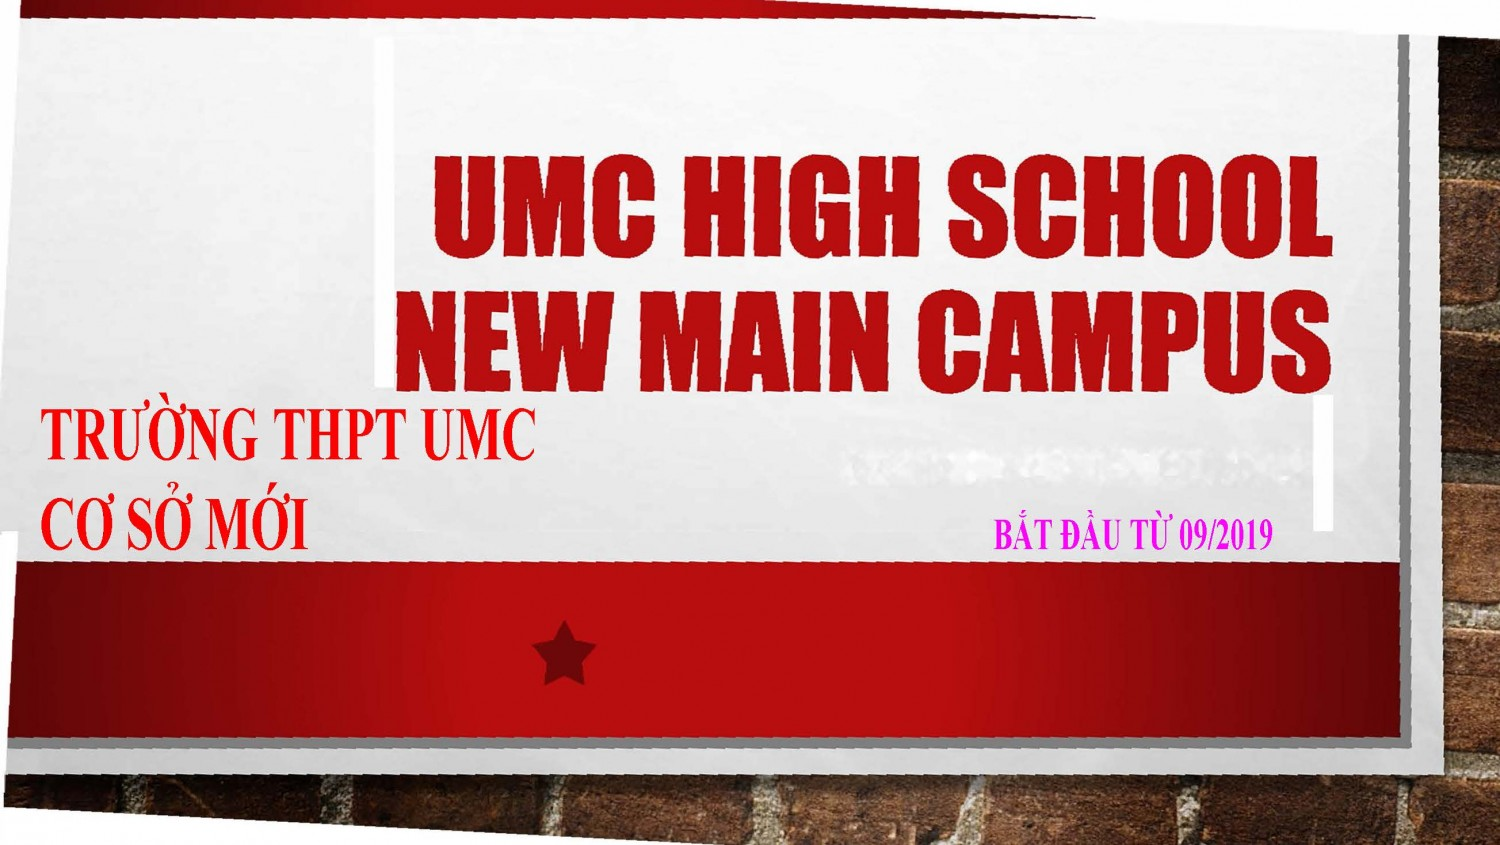 umc high school new campus ban dich page 1